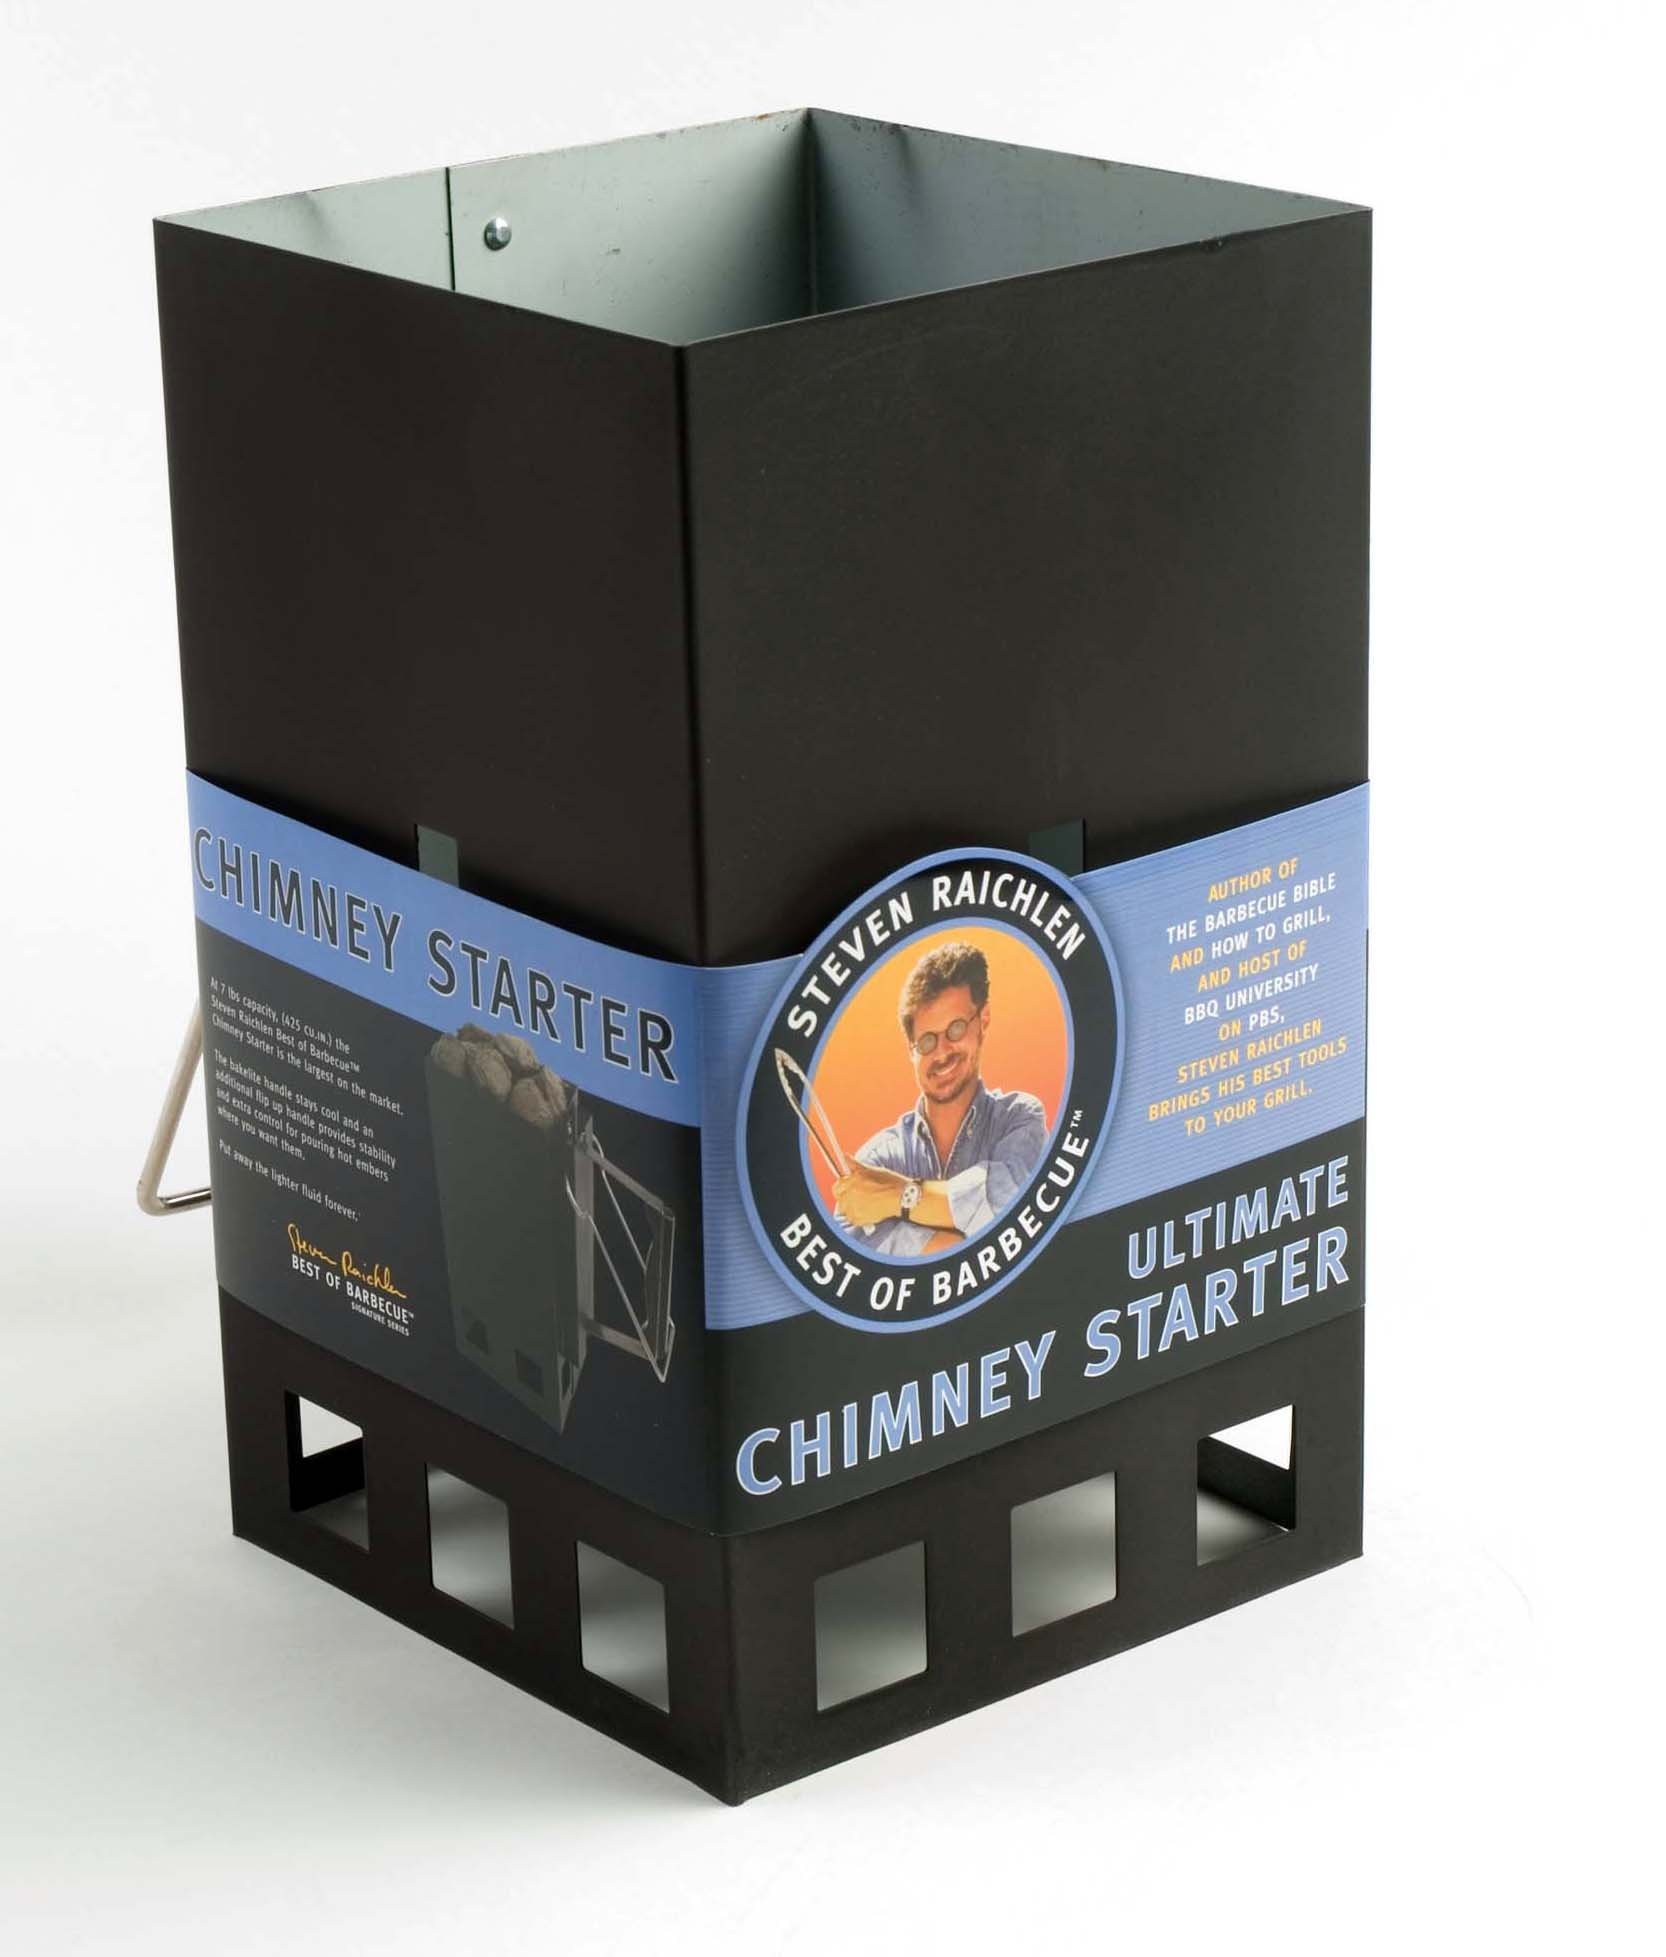 Steven Raichlen Best of Barbecue Ultimate Chimney Charcoal Starter with Handle